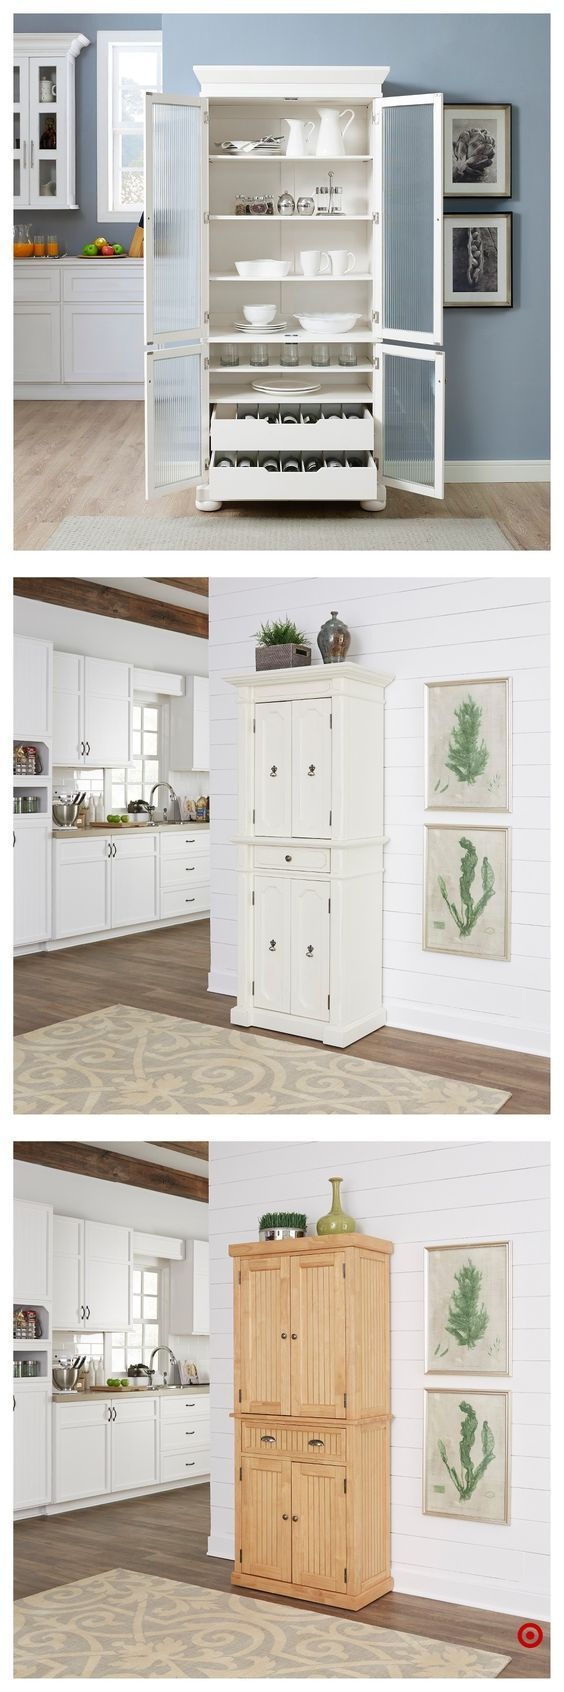 Shop Target For Kitchen Storage Pantry You Will Love At Great Low Prices Free Shipping On Orders Of 35 Or Free Same Da Home Home Decor Kitchen Home Kitchens